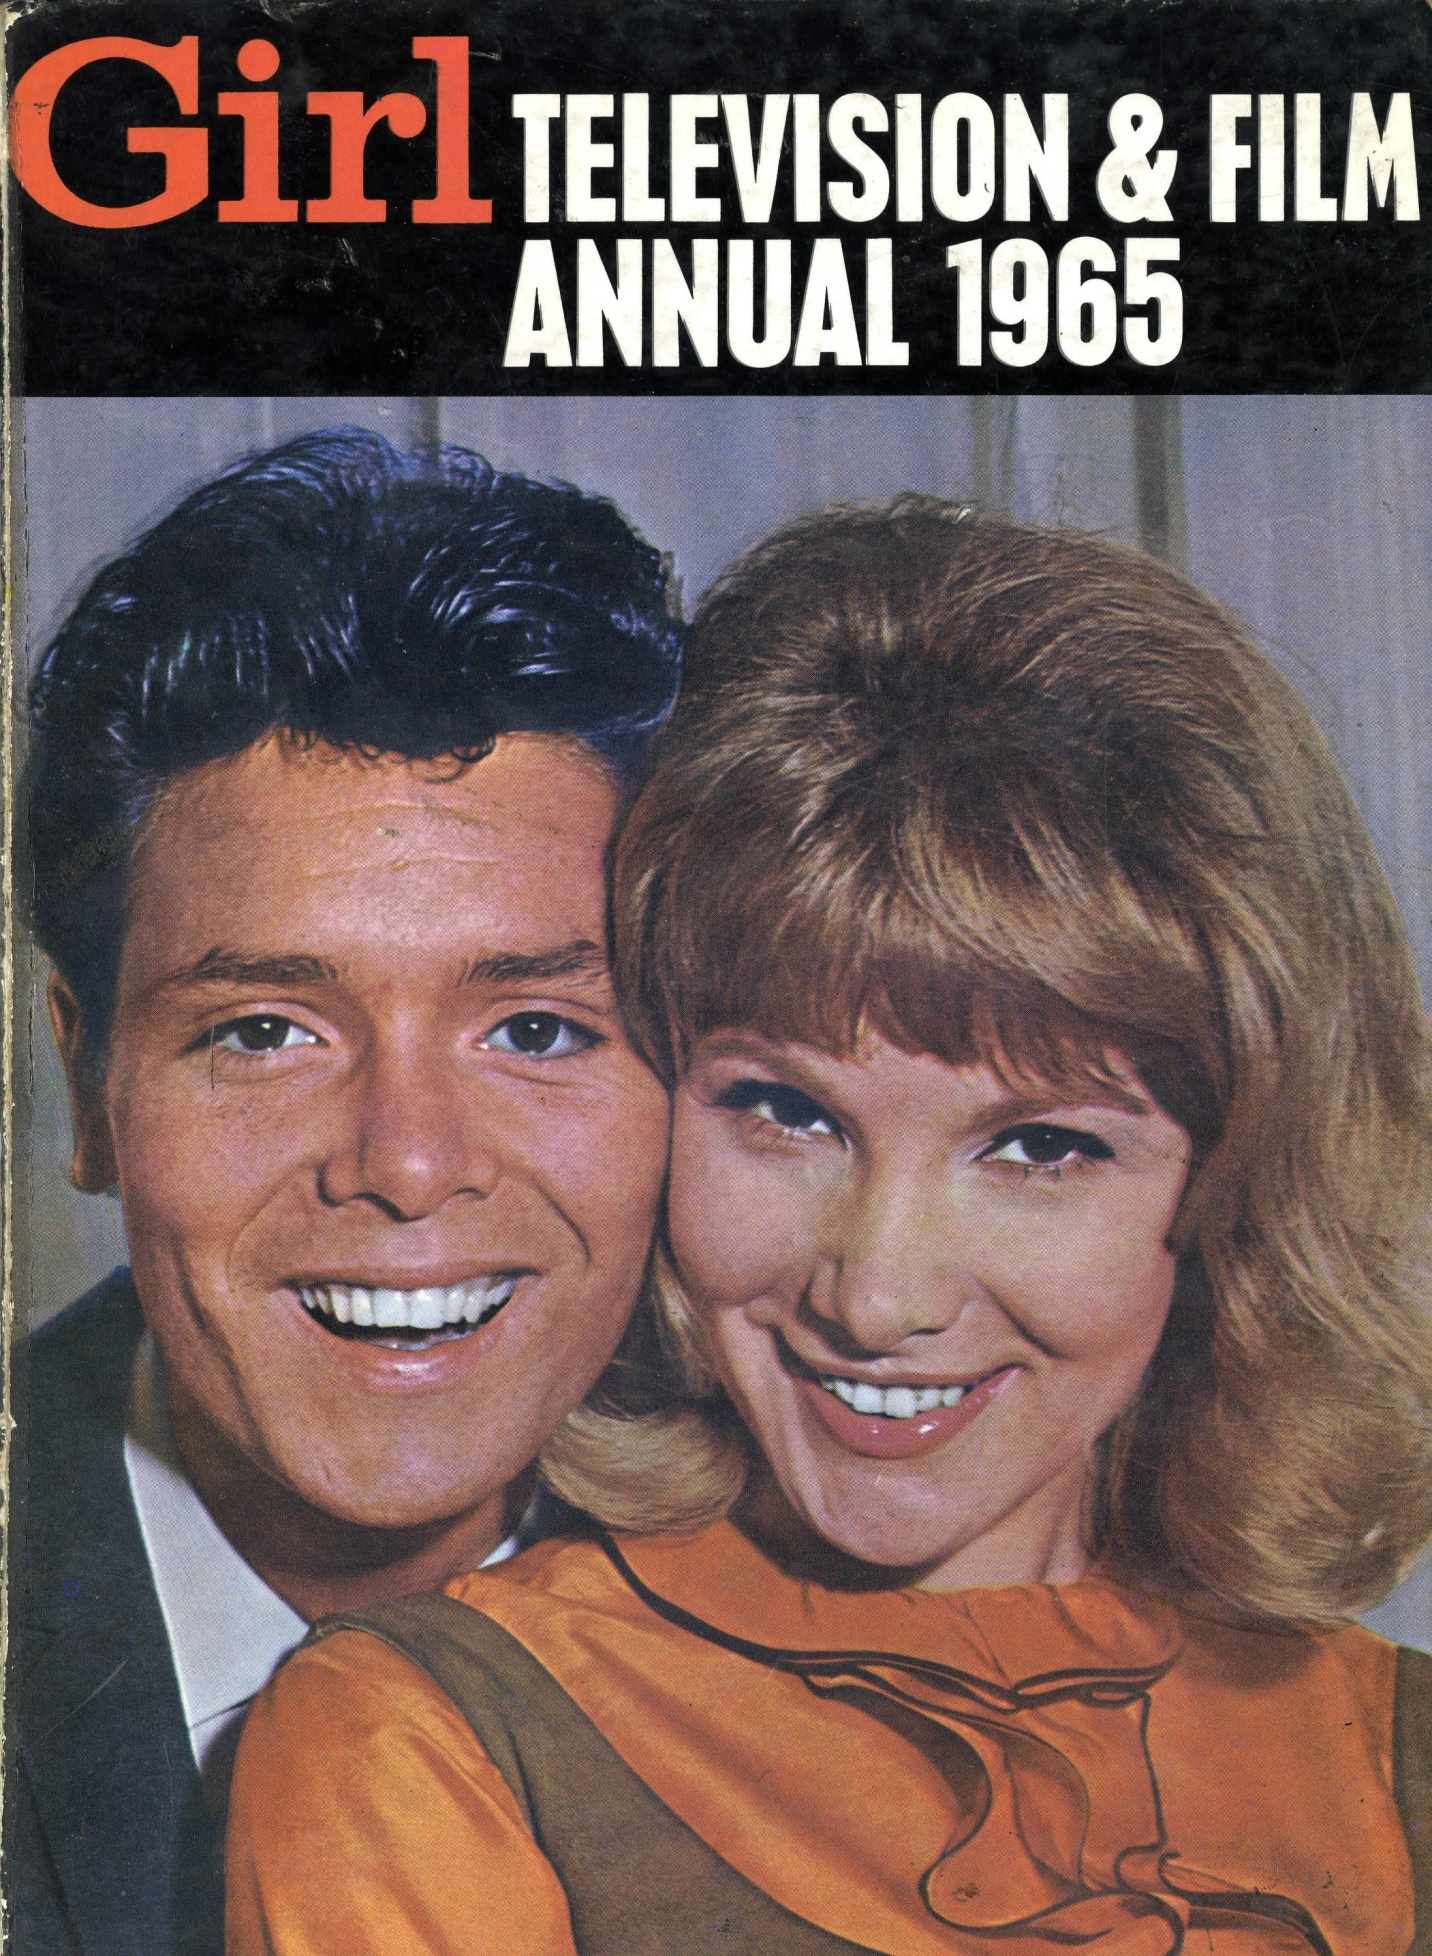 Cover of Girl Film and Television Annual 1965, Odhams Books Ltd., (published 1964)